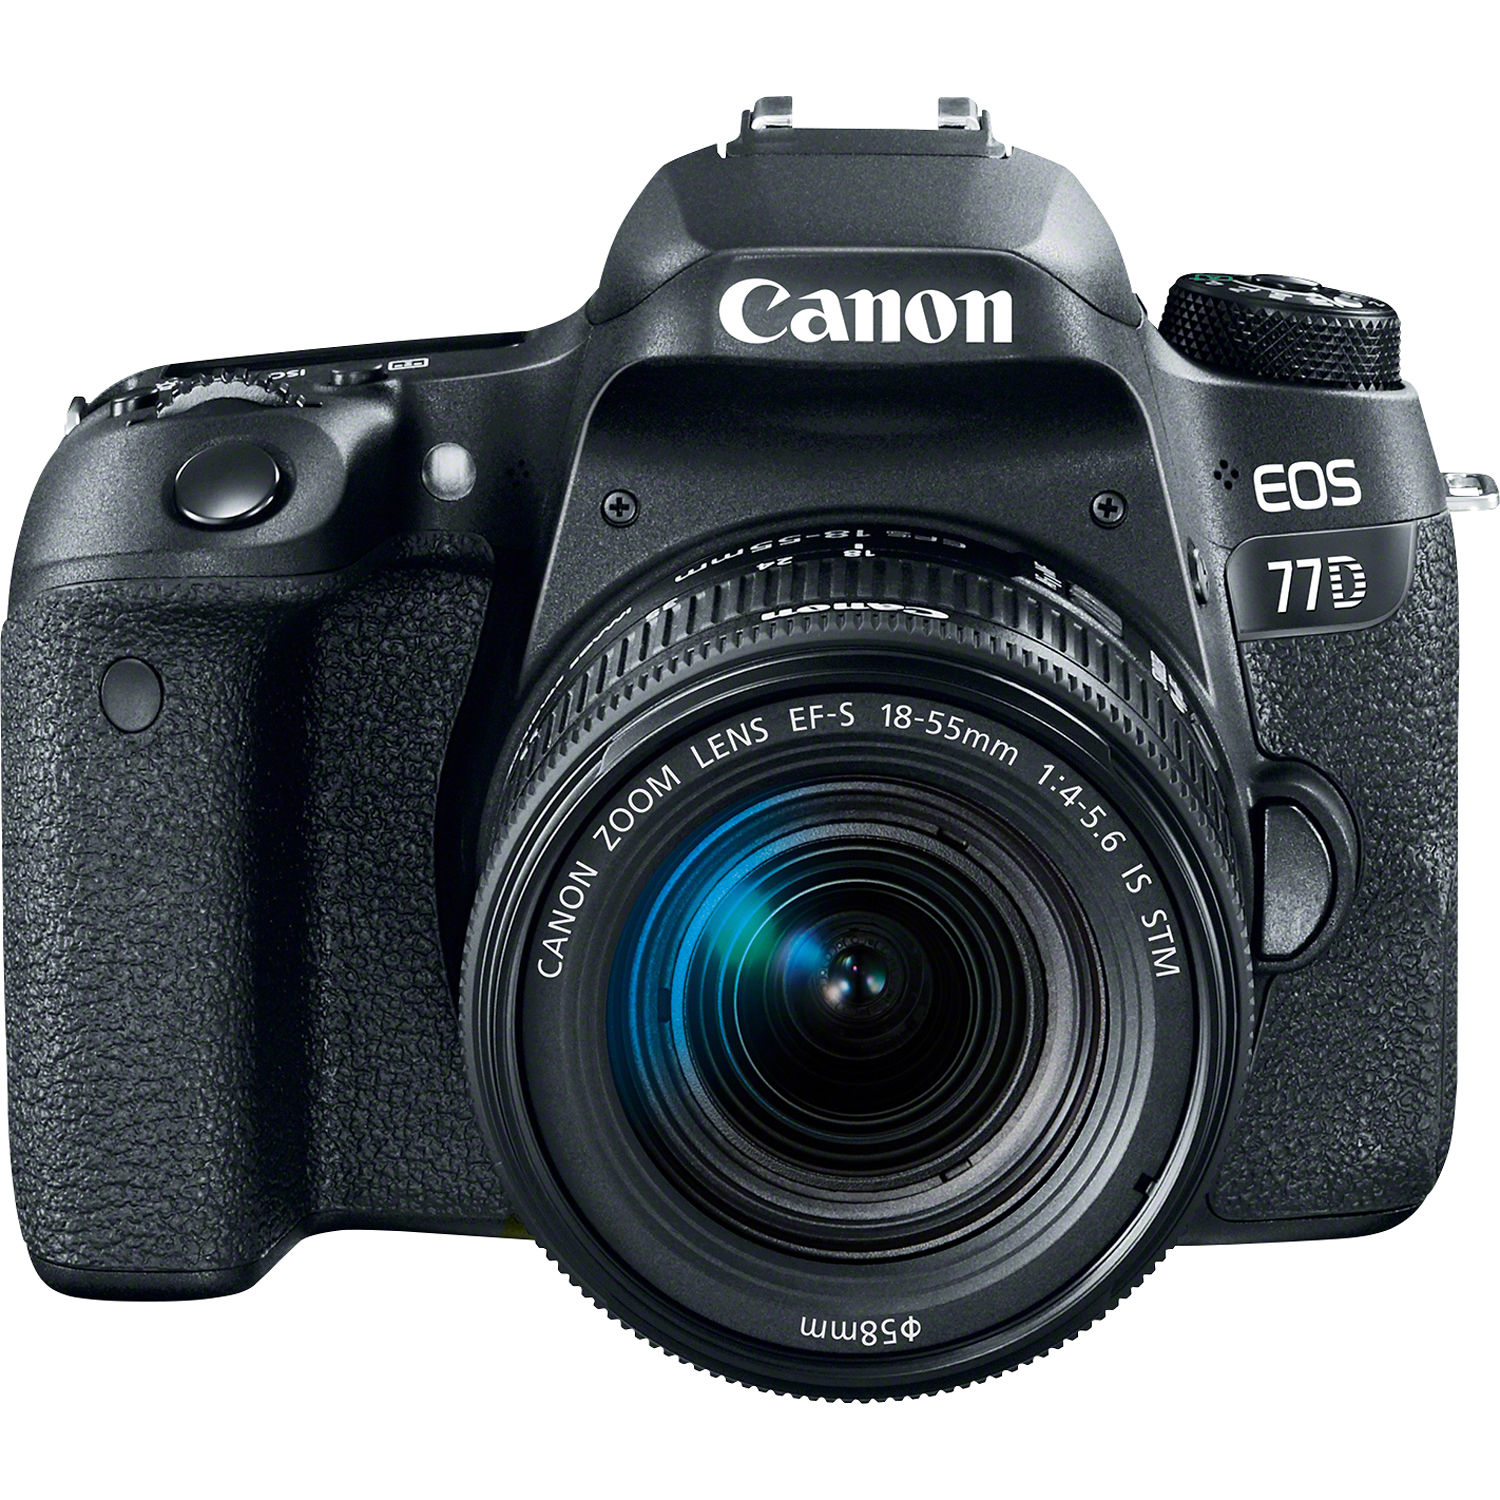 Canon EOS 77D DSLR Camera with 18-55mm Lens 1892C016 B&H Photo